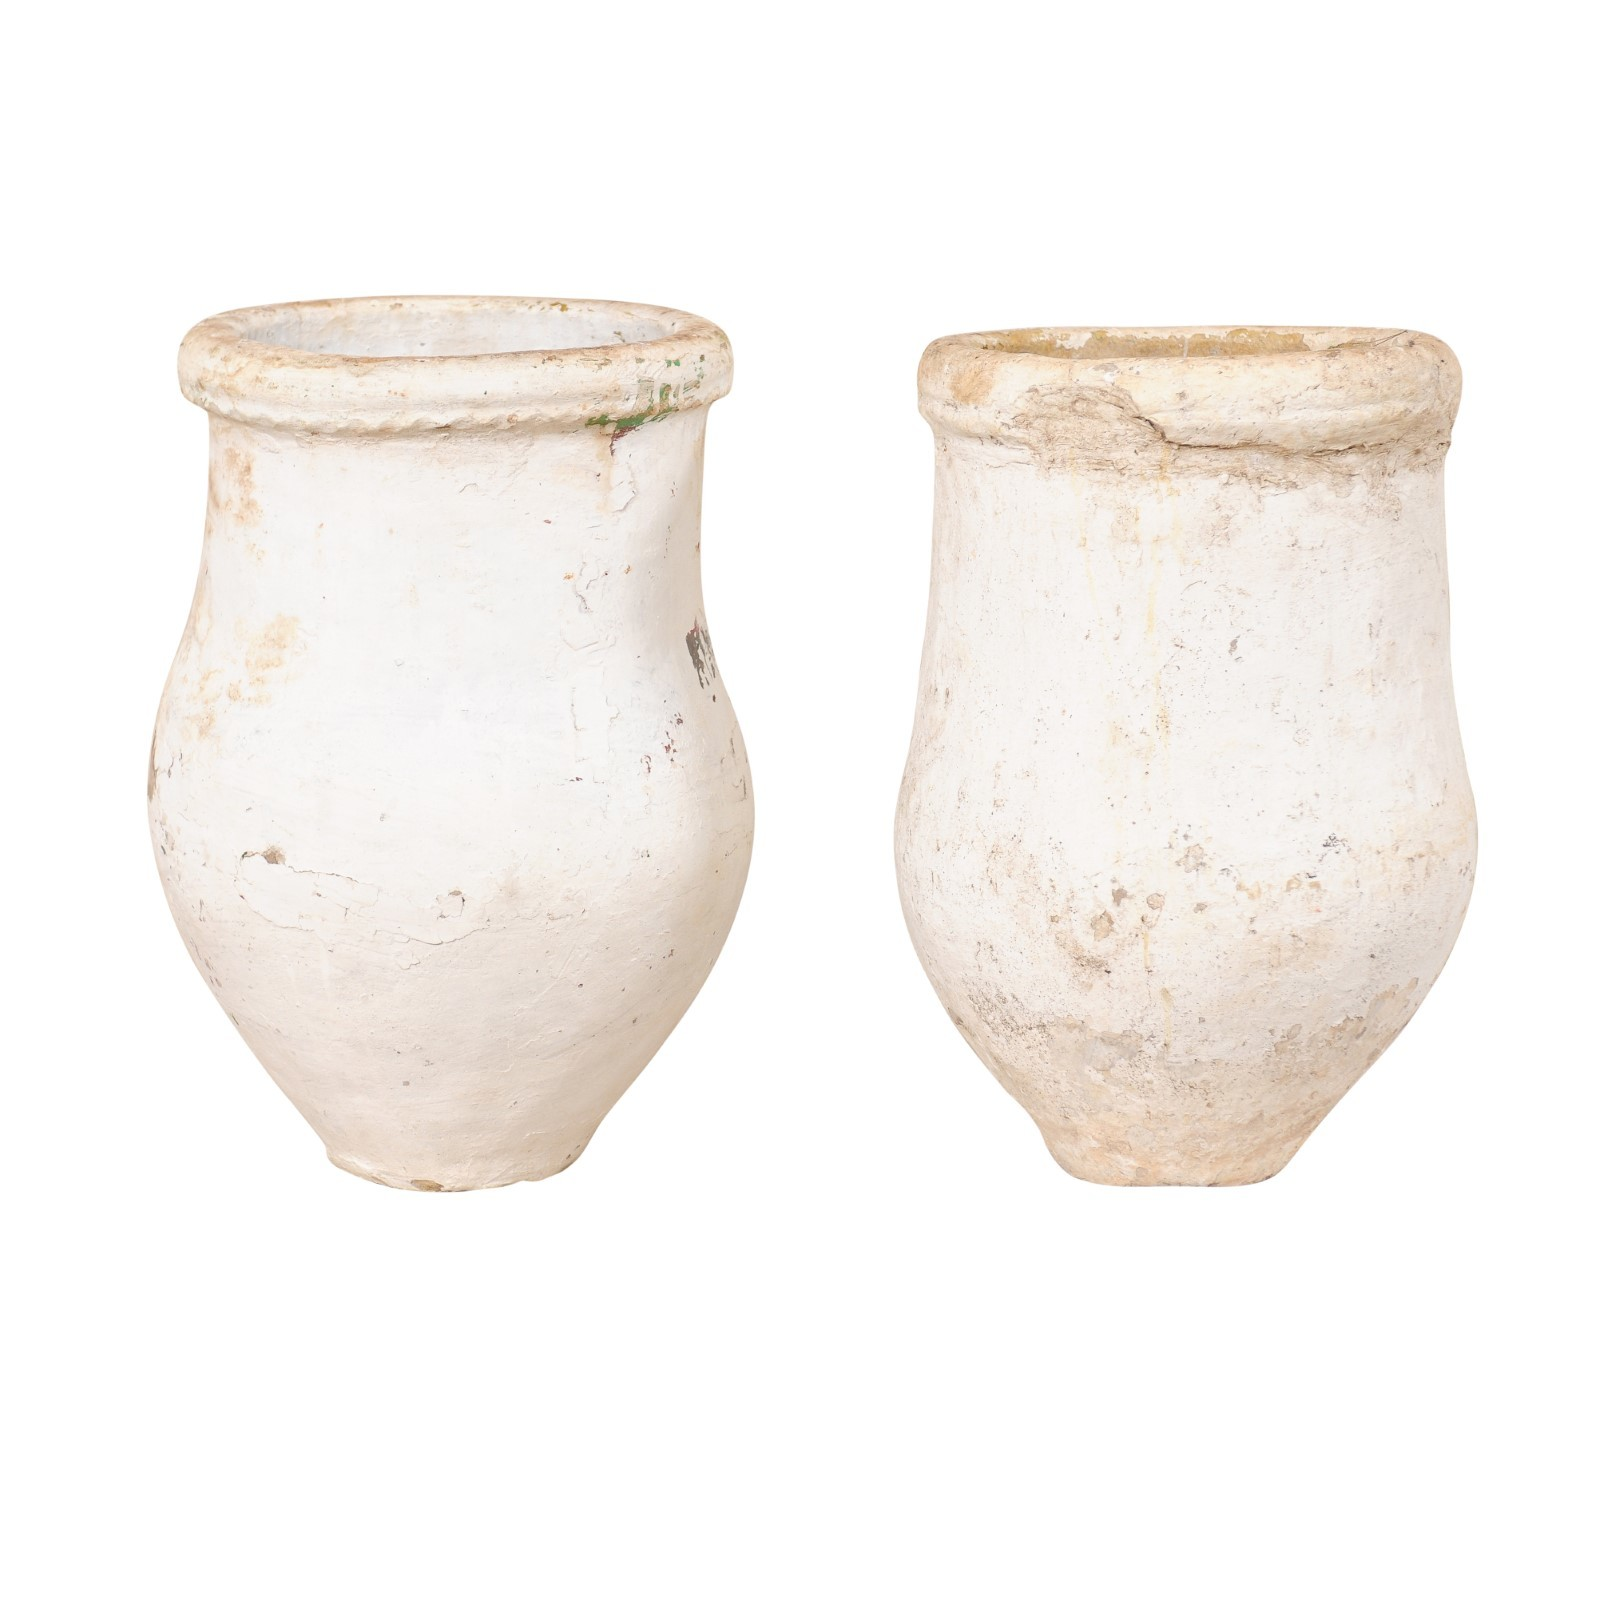 Pair 19th C. Clay Vessels from Spain